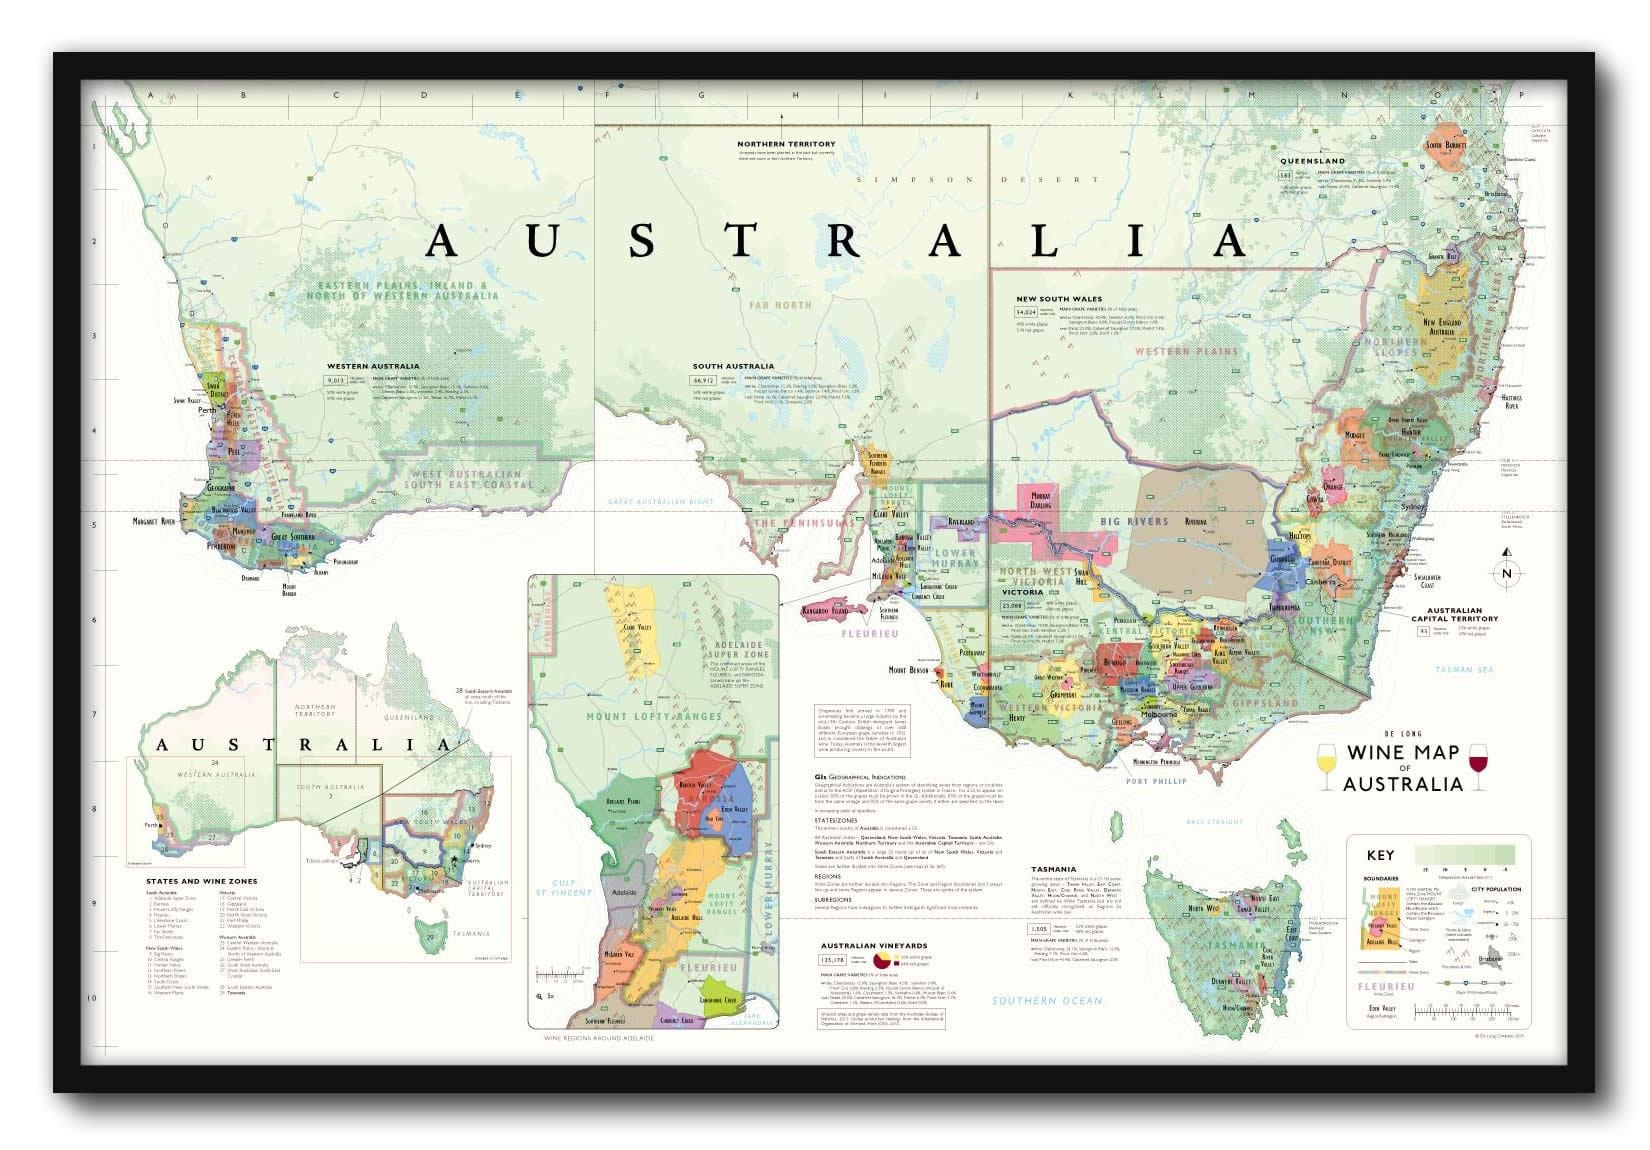 Wine Map of Australia Framed - De Long De Map on delaware map, et map, wv map, bhi map, pa map, ja map, east coast map, nee map, az map, md map, madre map, usa map, zi map, ri map, ae map, golo map, fl map, vg map, uso map,